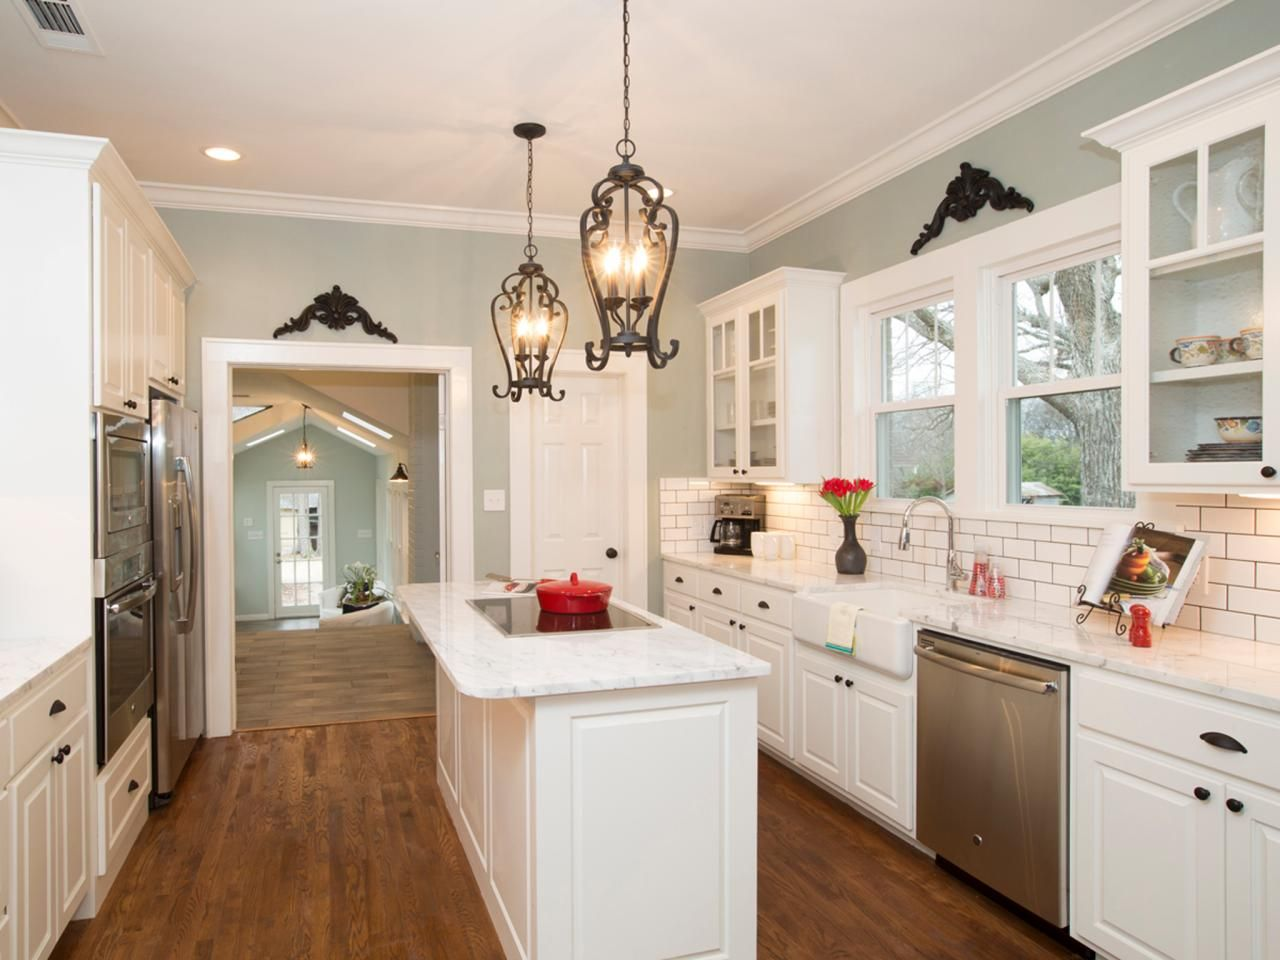 Hgtv fixer upper white kitchens - As Seen On Hgtv S Fixer Upper This Gorgeous Cottage Kitchen Features Refinished Hardwood Floors